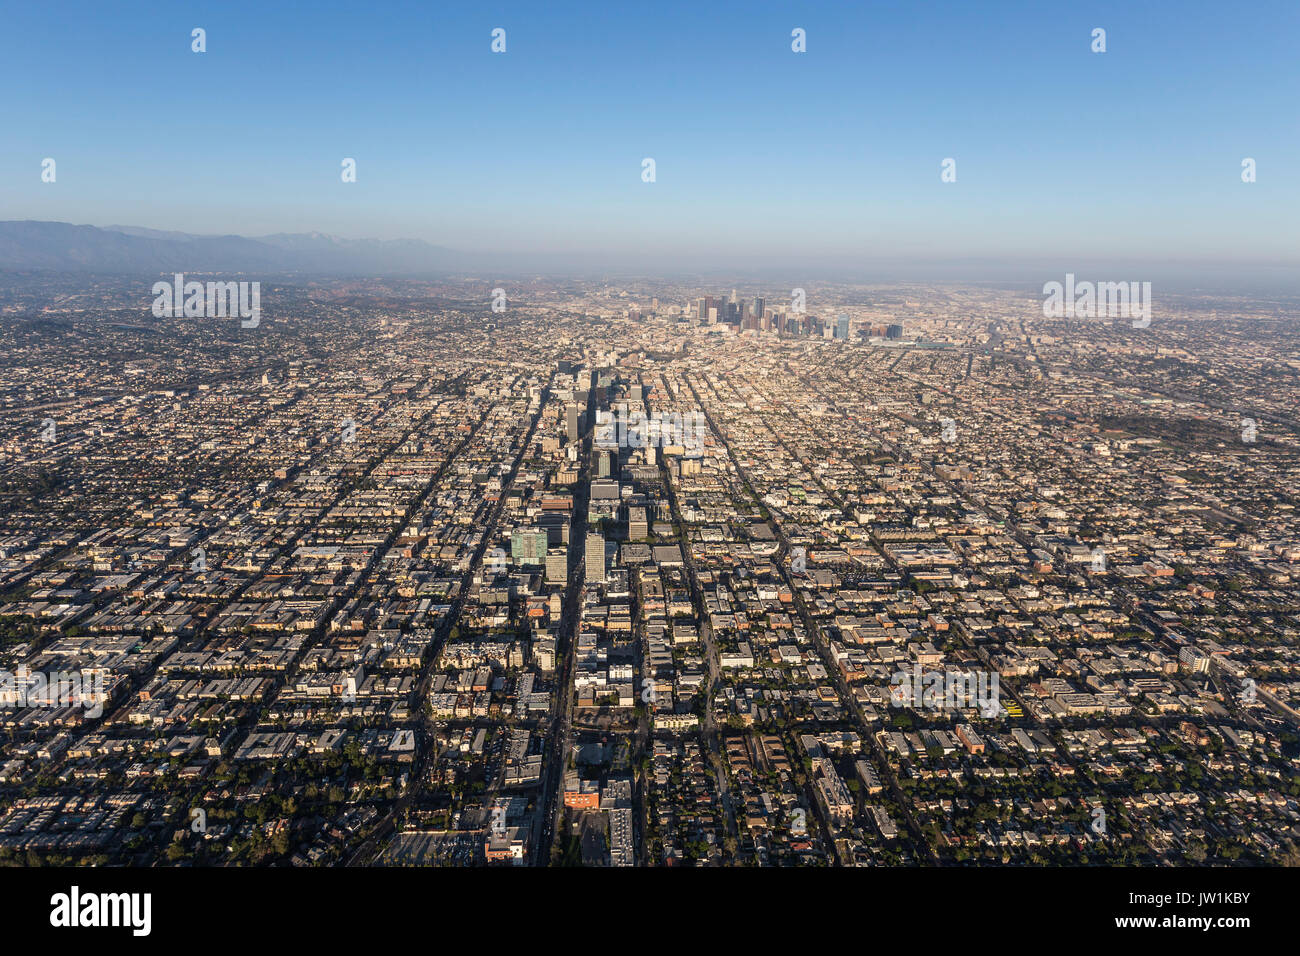 Smoggy summer afternoon aerial view of the Wilshire District and downtown Los Angeles in Southern California. - Stock Image